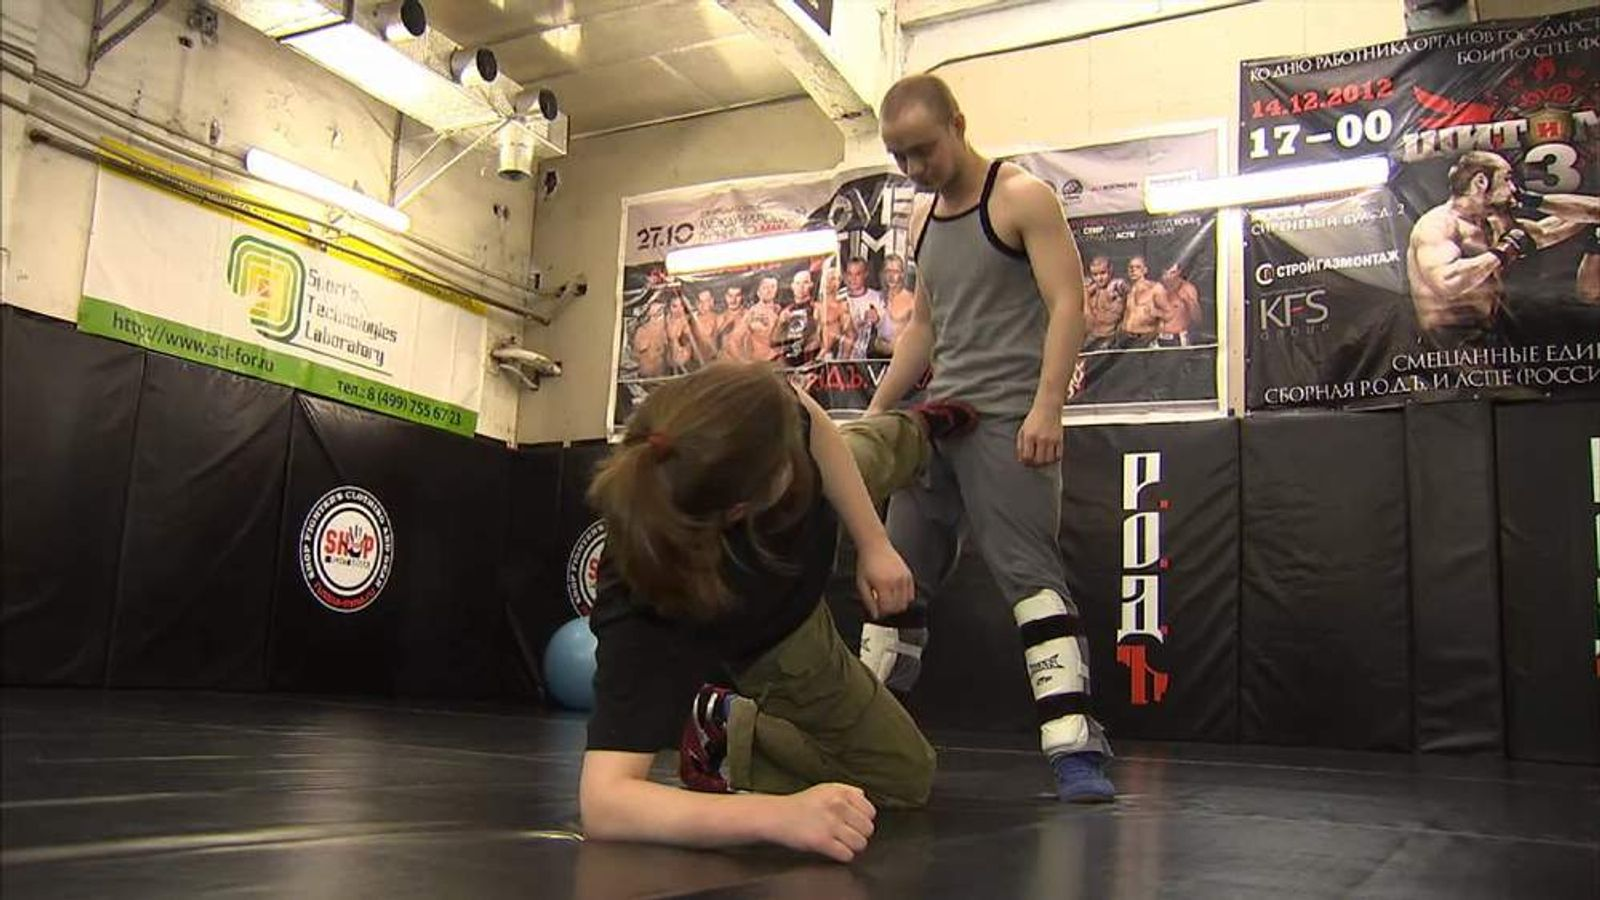 Gay Russians Learn Self-Defence